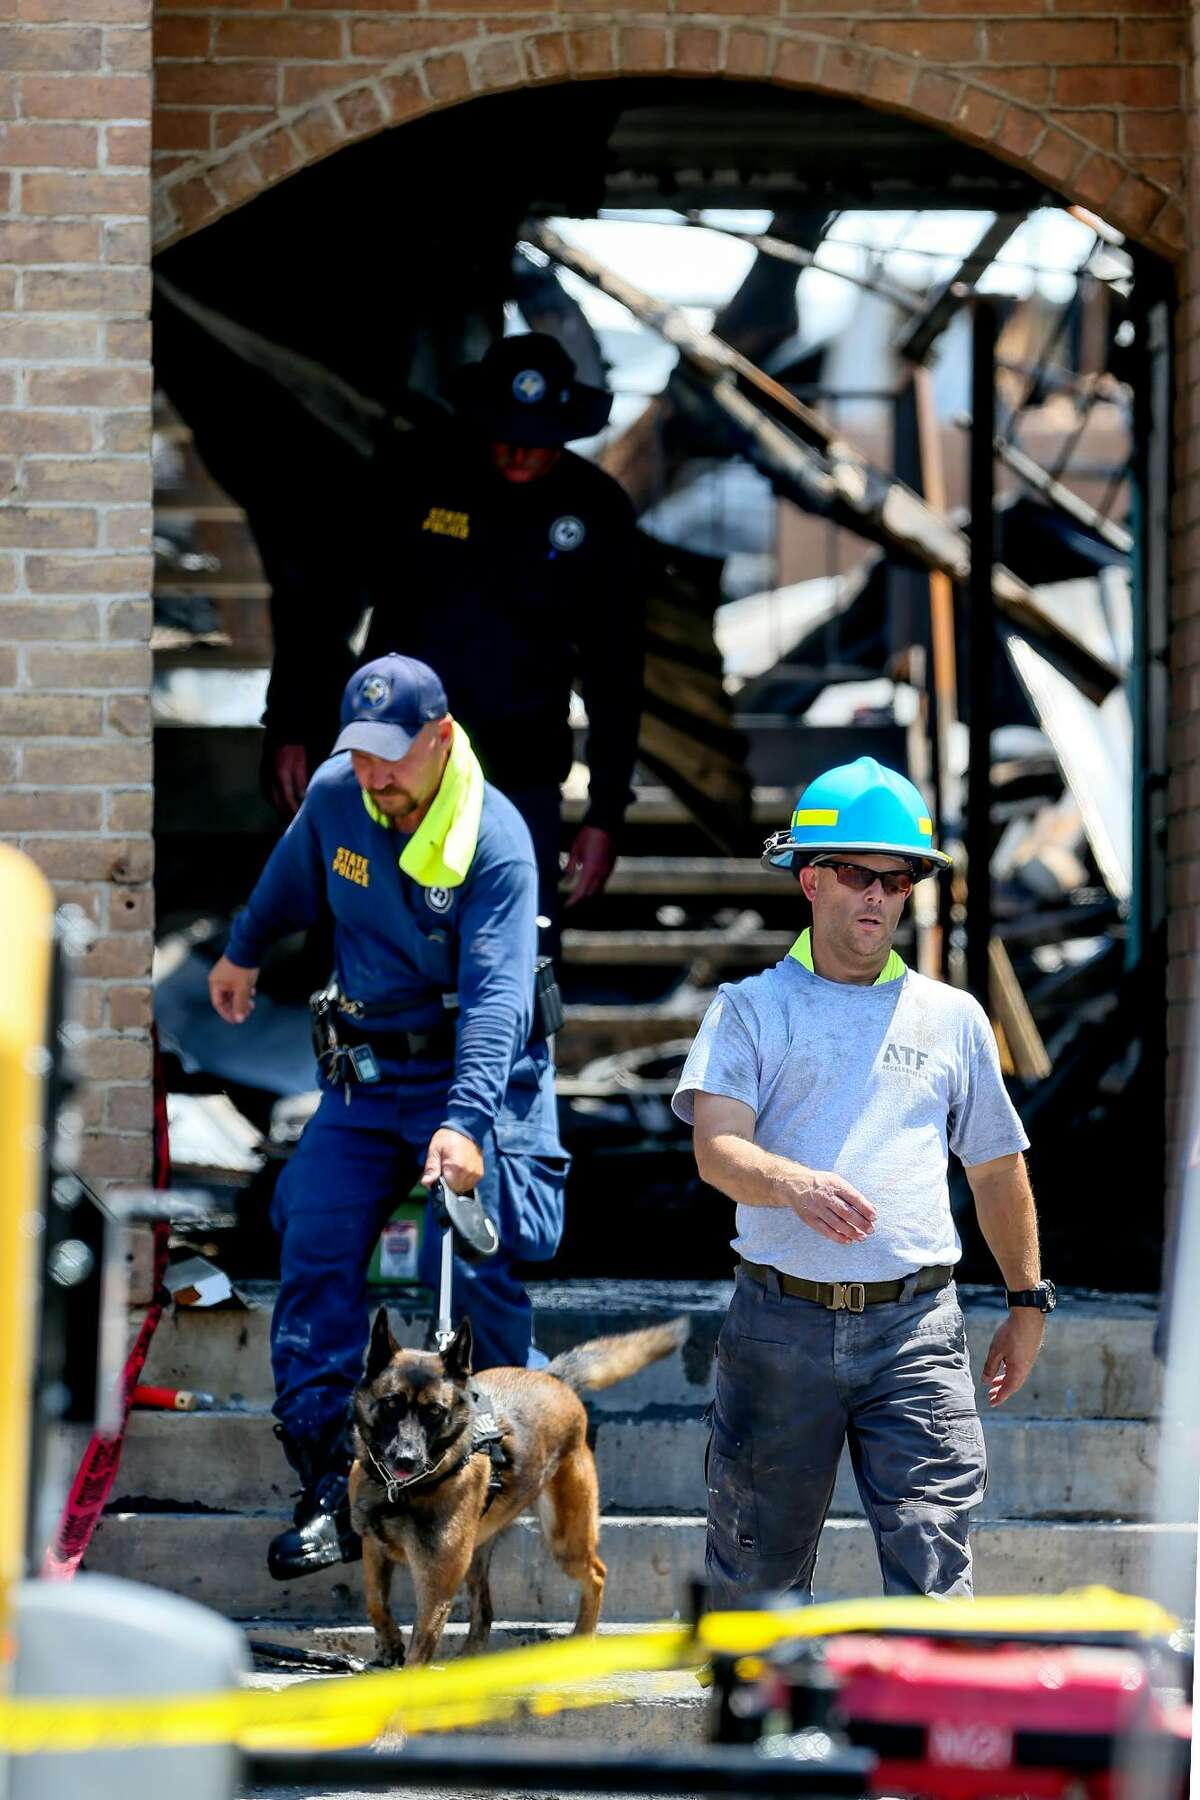 Investigators walk through an entryway at the Iconic Village Apartments in San Marcos on Monday, July 23, 2018. Four victims have been recovered so far from the fire that began at the apartment complex at 4:30 a.m. and affected three apartment buildings on Friday, July, 20. Five people are still unaccounted for. Officials do not yet know the origin of the fire, how it started. or what the total number of victims will be.